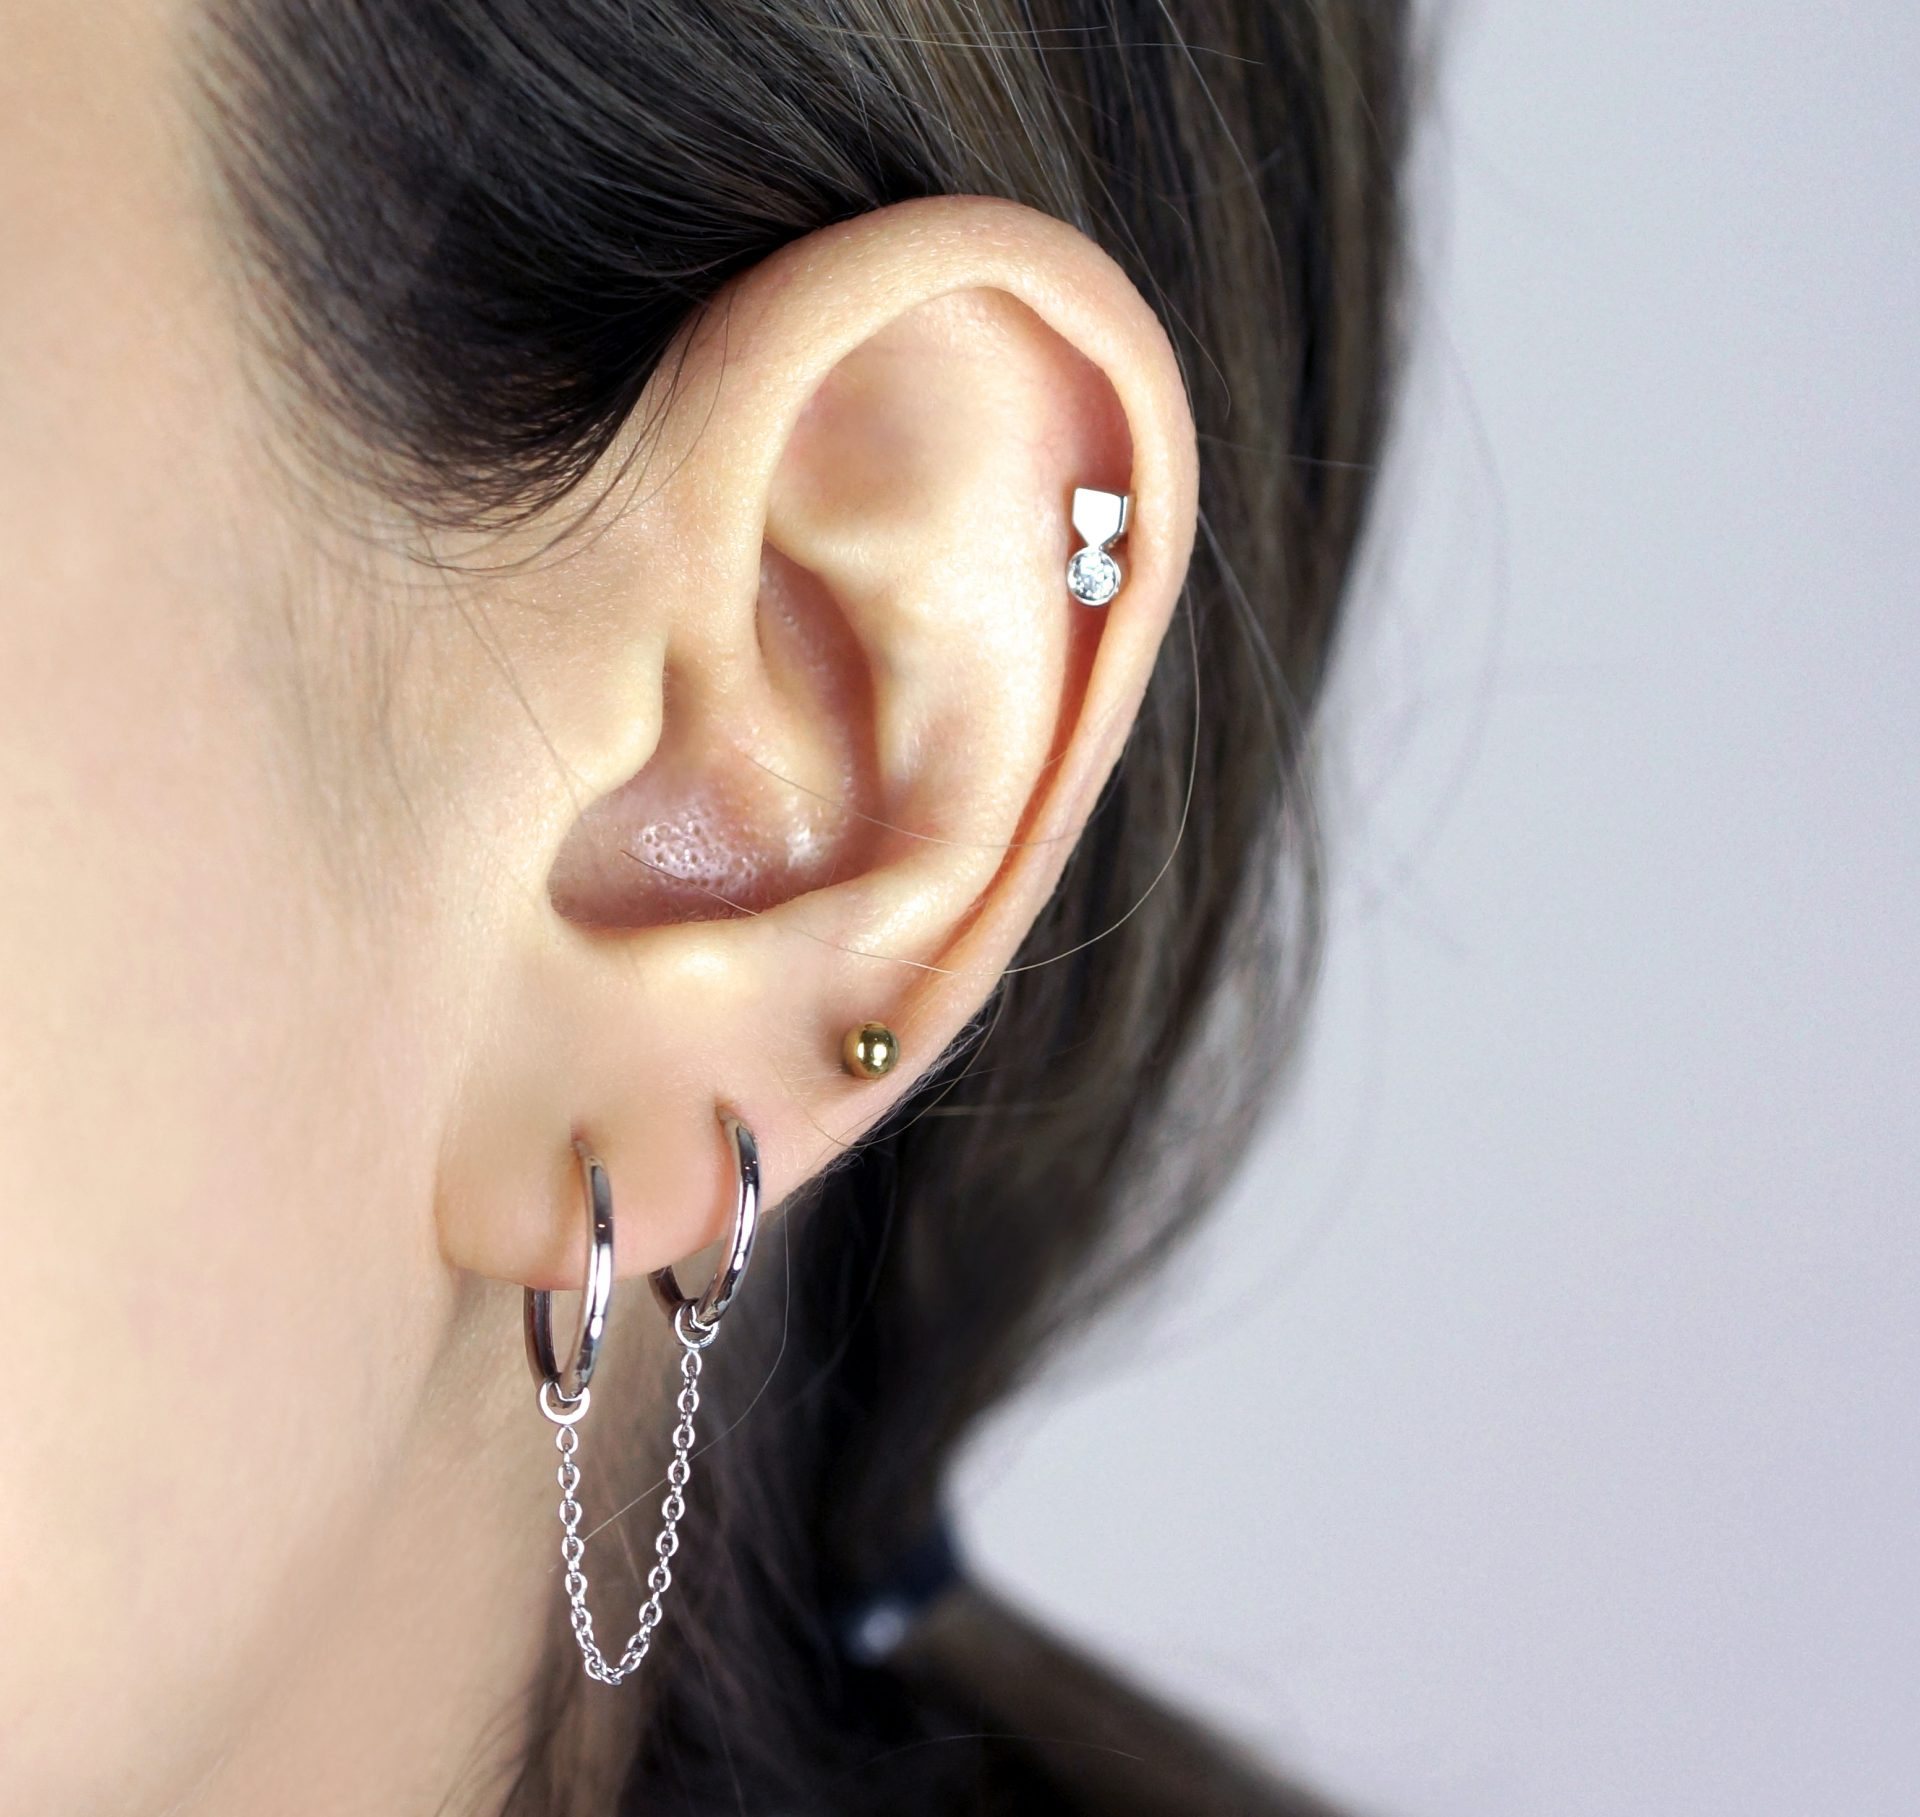 Luxury-Ear-Piercing-Jewellery-in-London-Lena-Cohen-Unique-Designs-Created–Crafted-Master-Goldsmiths-Using-Natural-Stones (1)